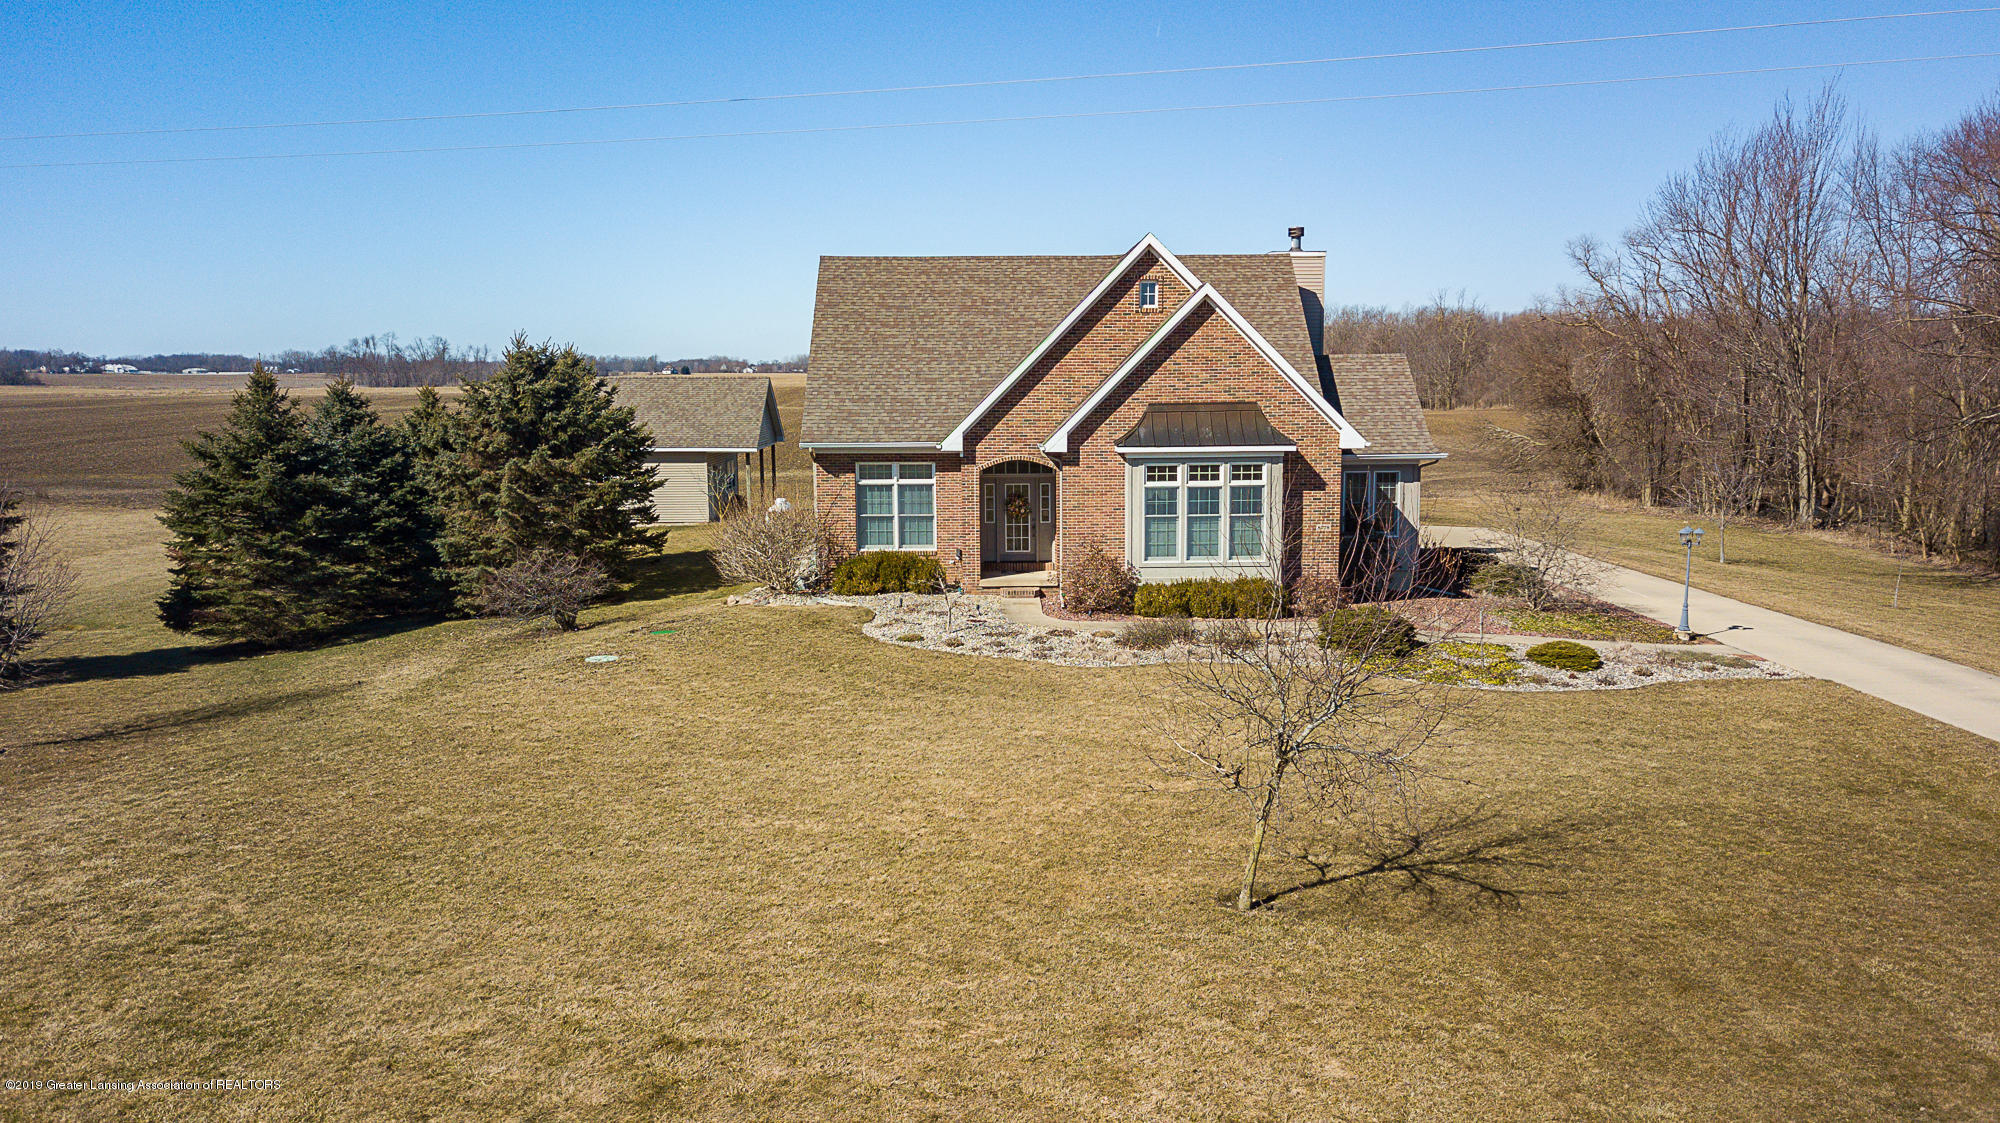 8778 S Lowell Rd - Beautiful Curb Appeal - 1